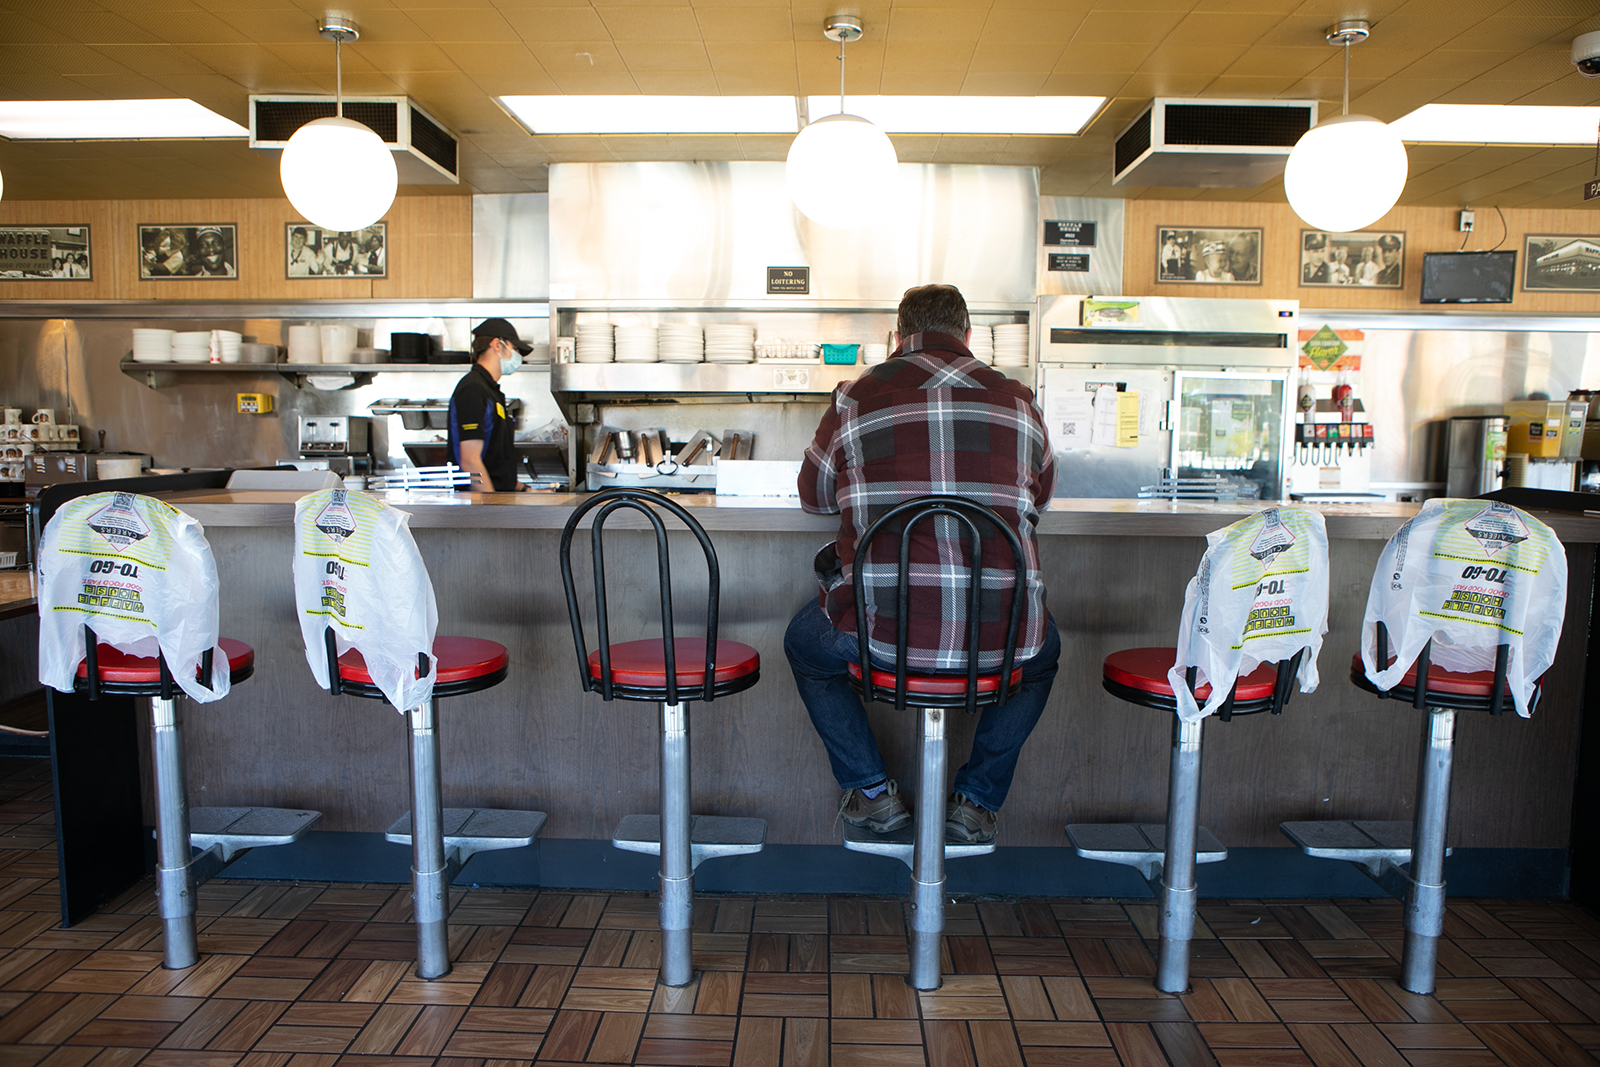 Ron Flexon sits at the counter for dine-in service while other seats are marked off for social distancing protocol at Waffle House on April 27, in Brookhaven, Georgia.